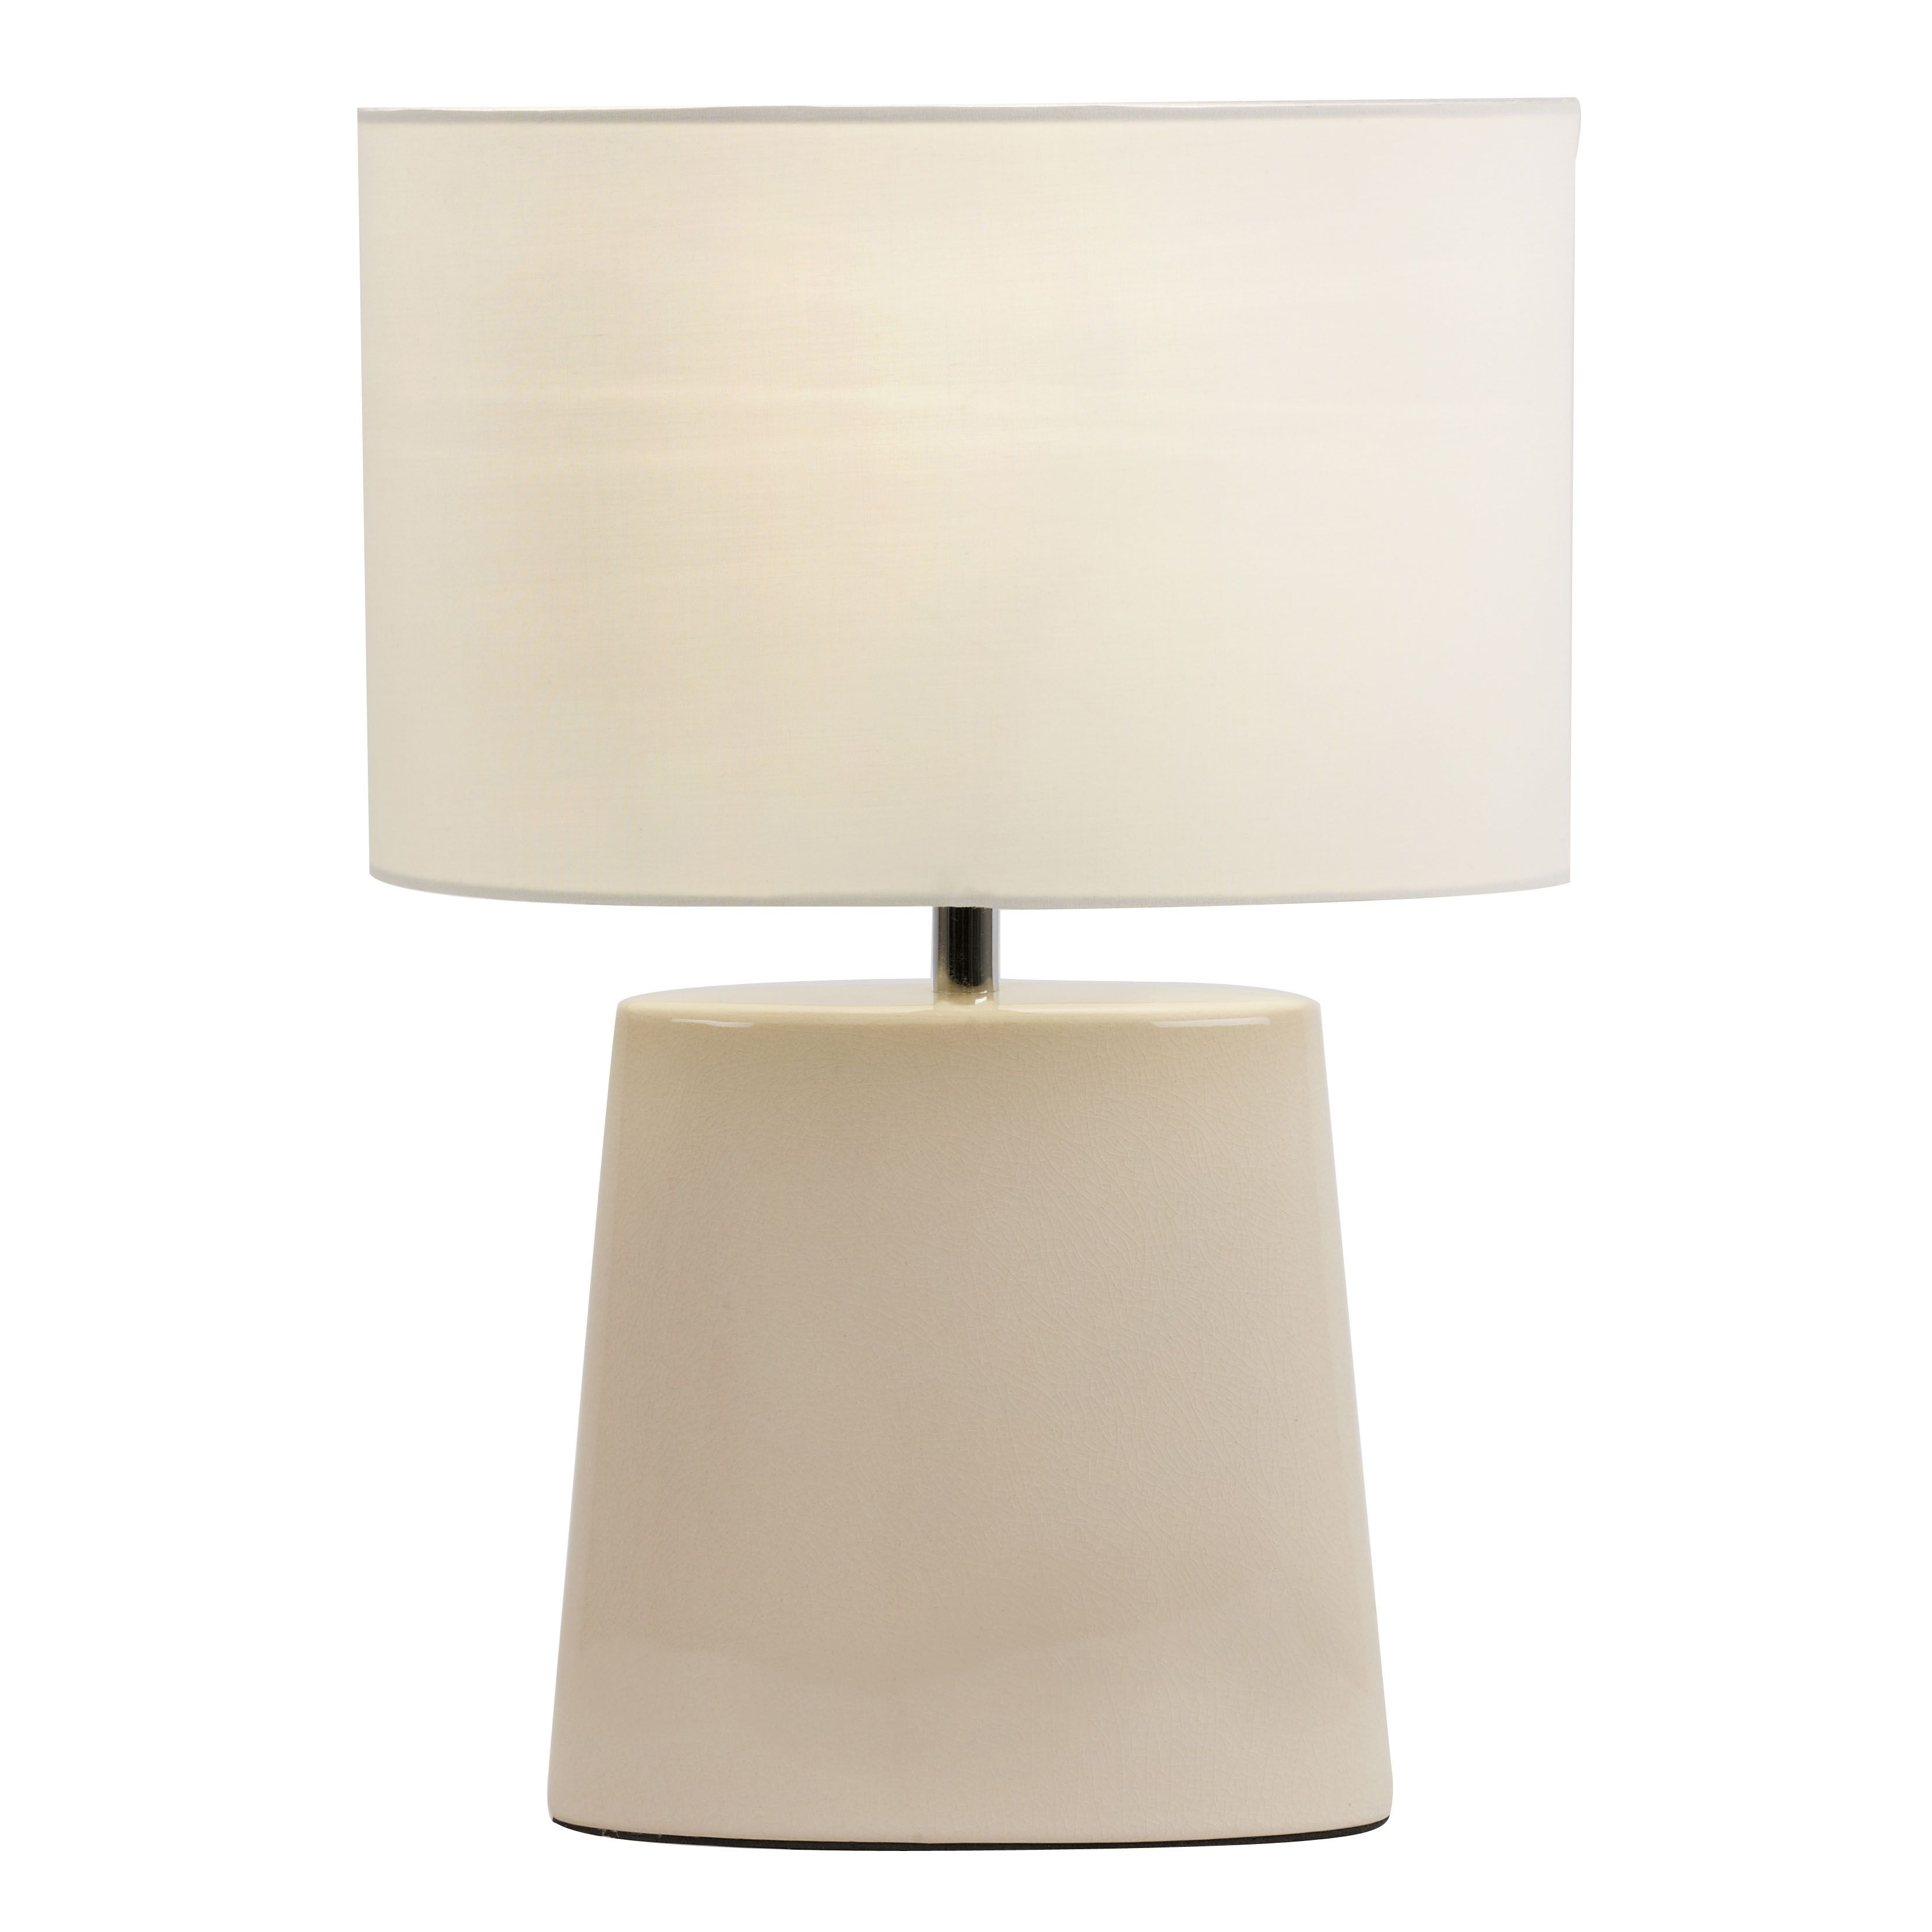 Ceramic table lamp with crackle glaze efect bxiris tlcr 17 class 2 double insulated